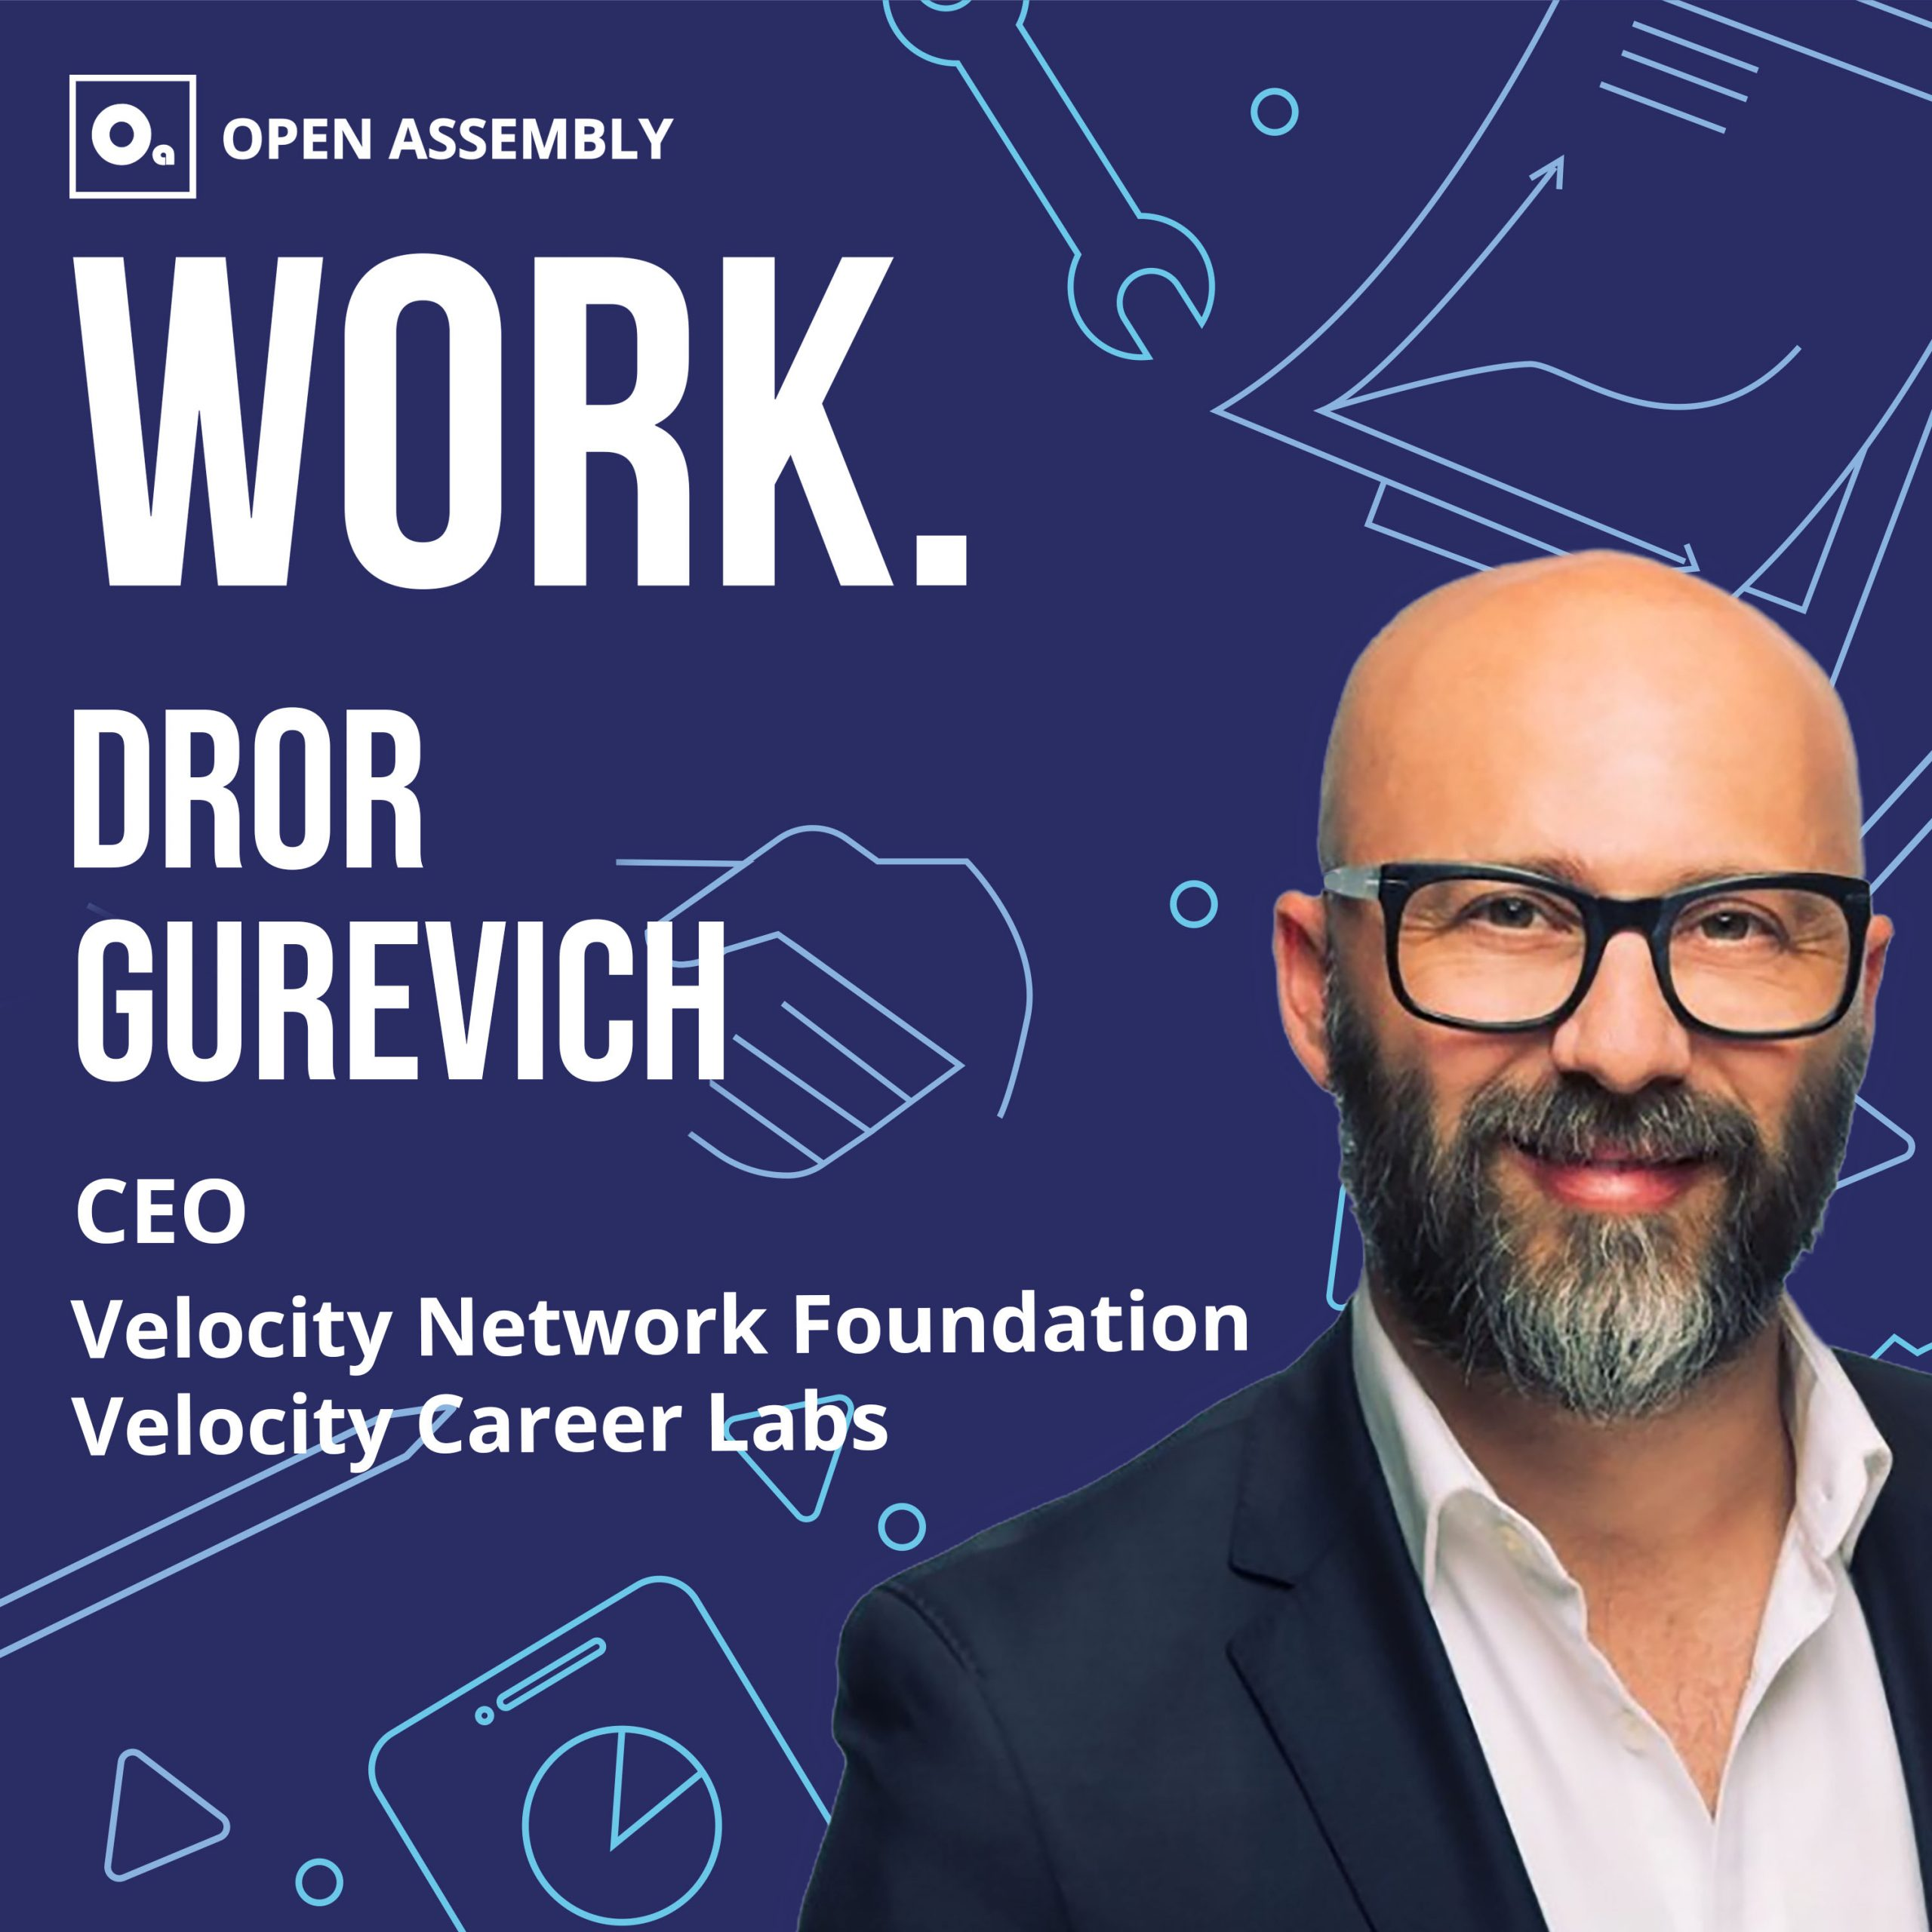 Dror Gurevich Velocity Career Labs and the Velocity Network Foundation